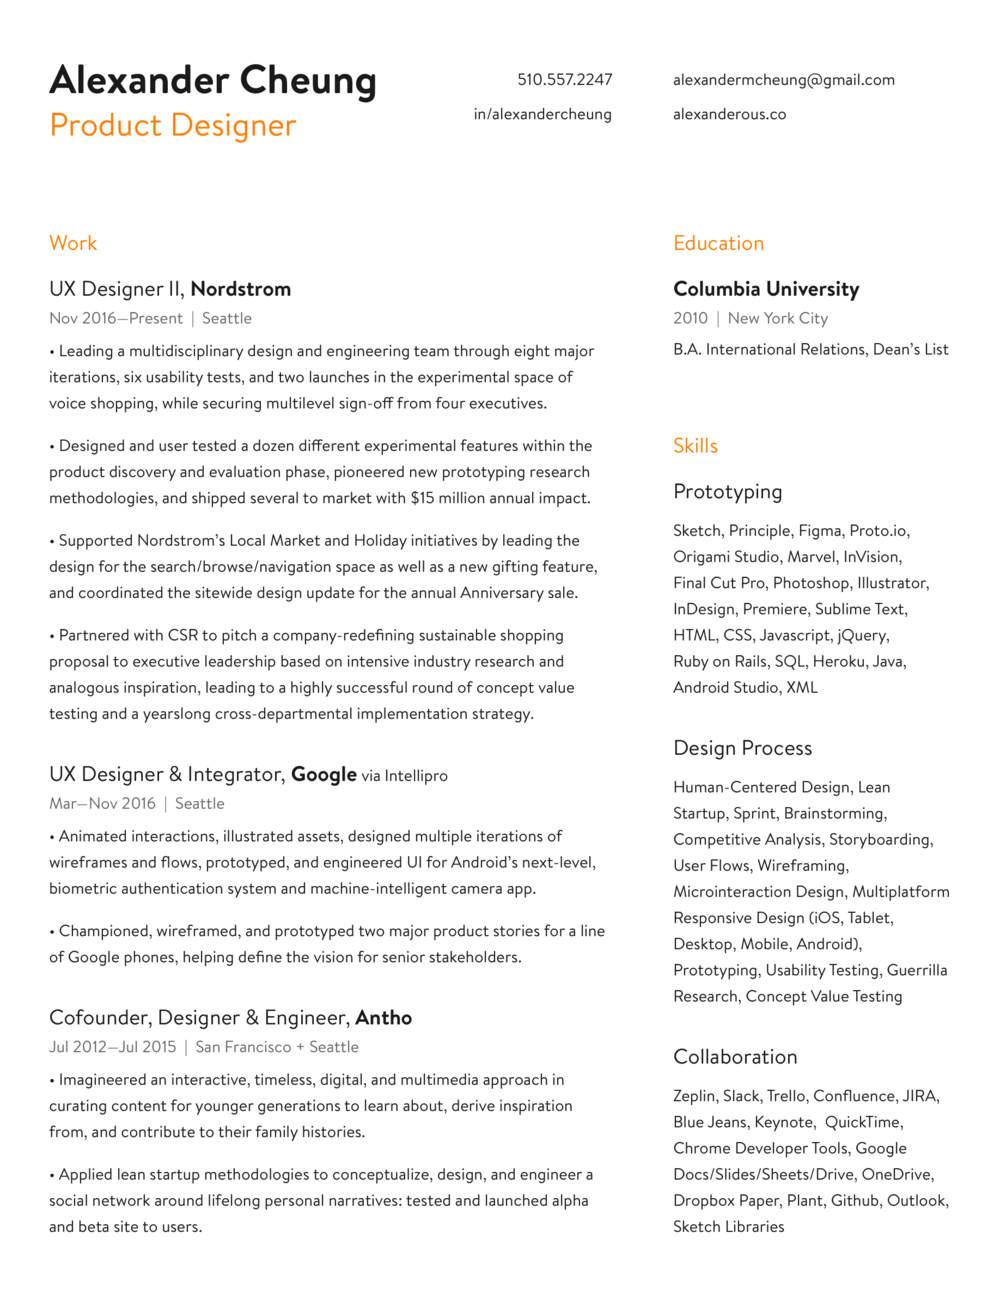 Alexander Cheung Product Design Resume No PW.png